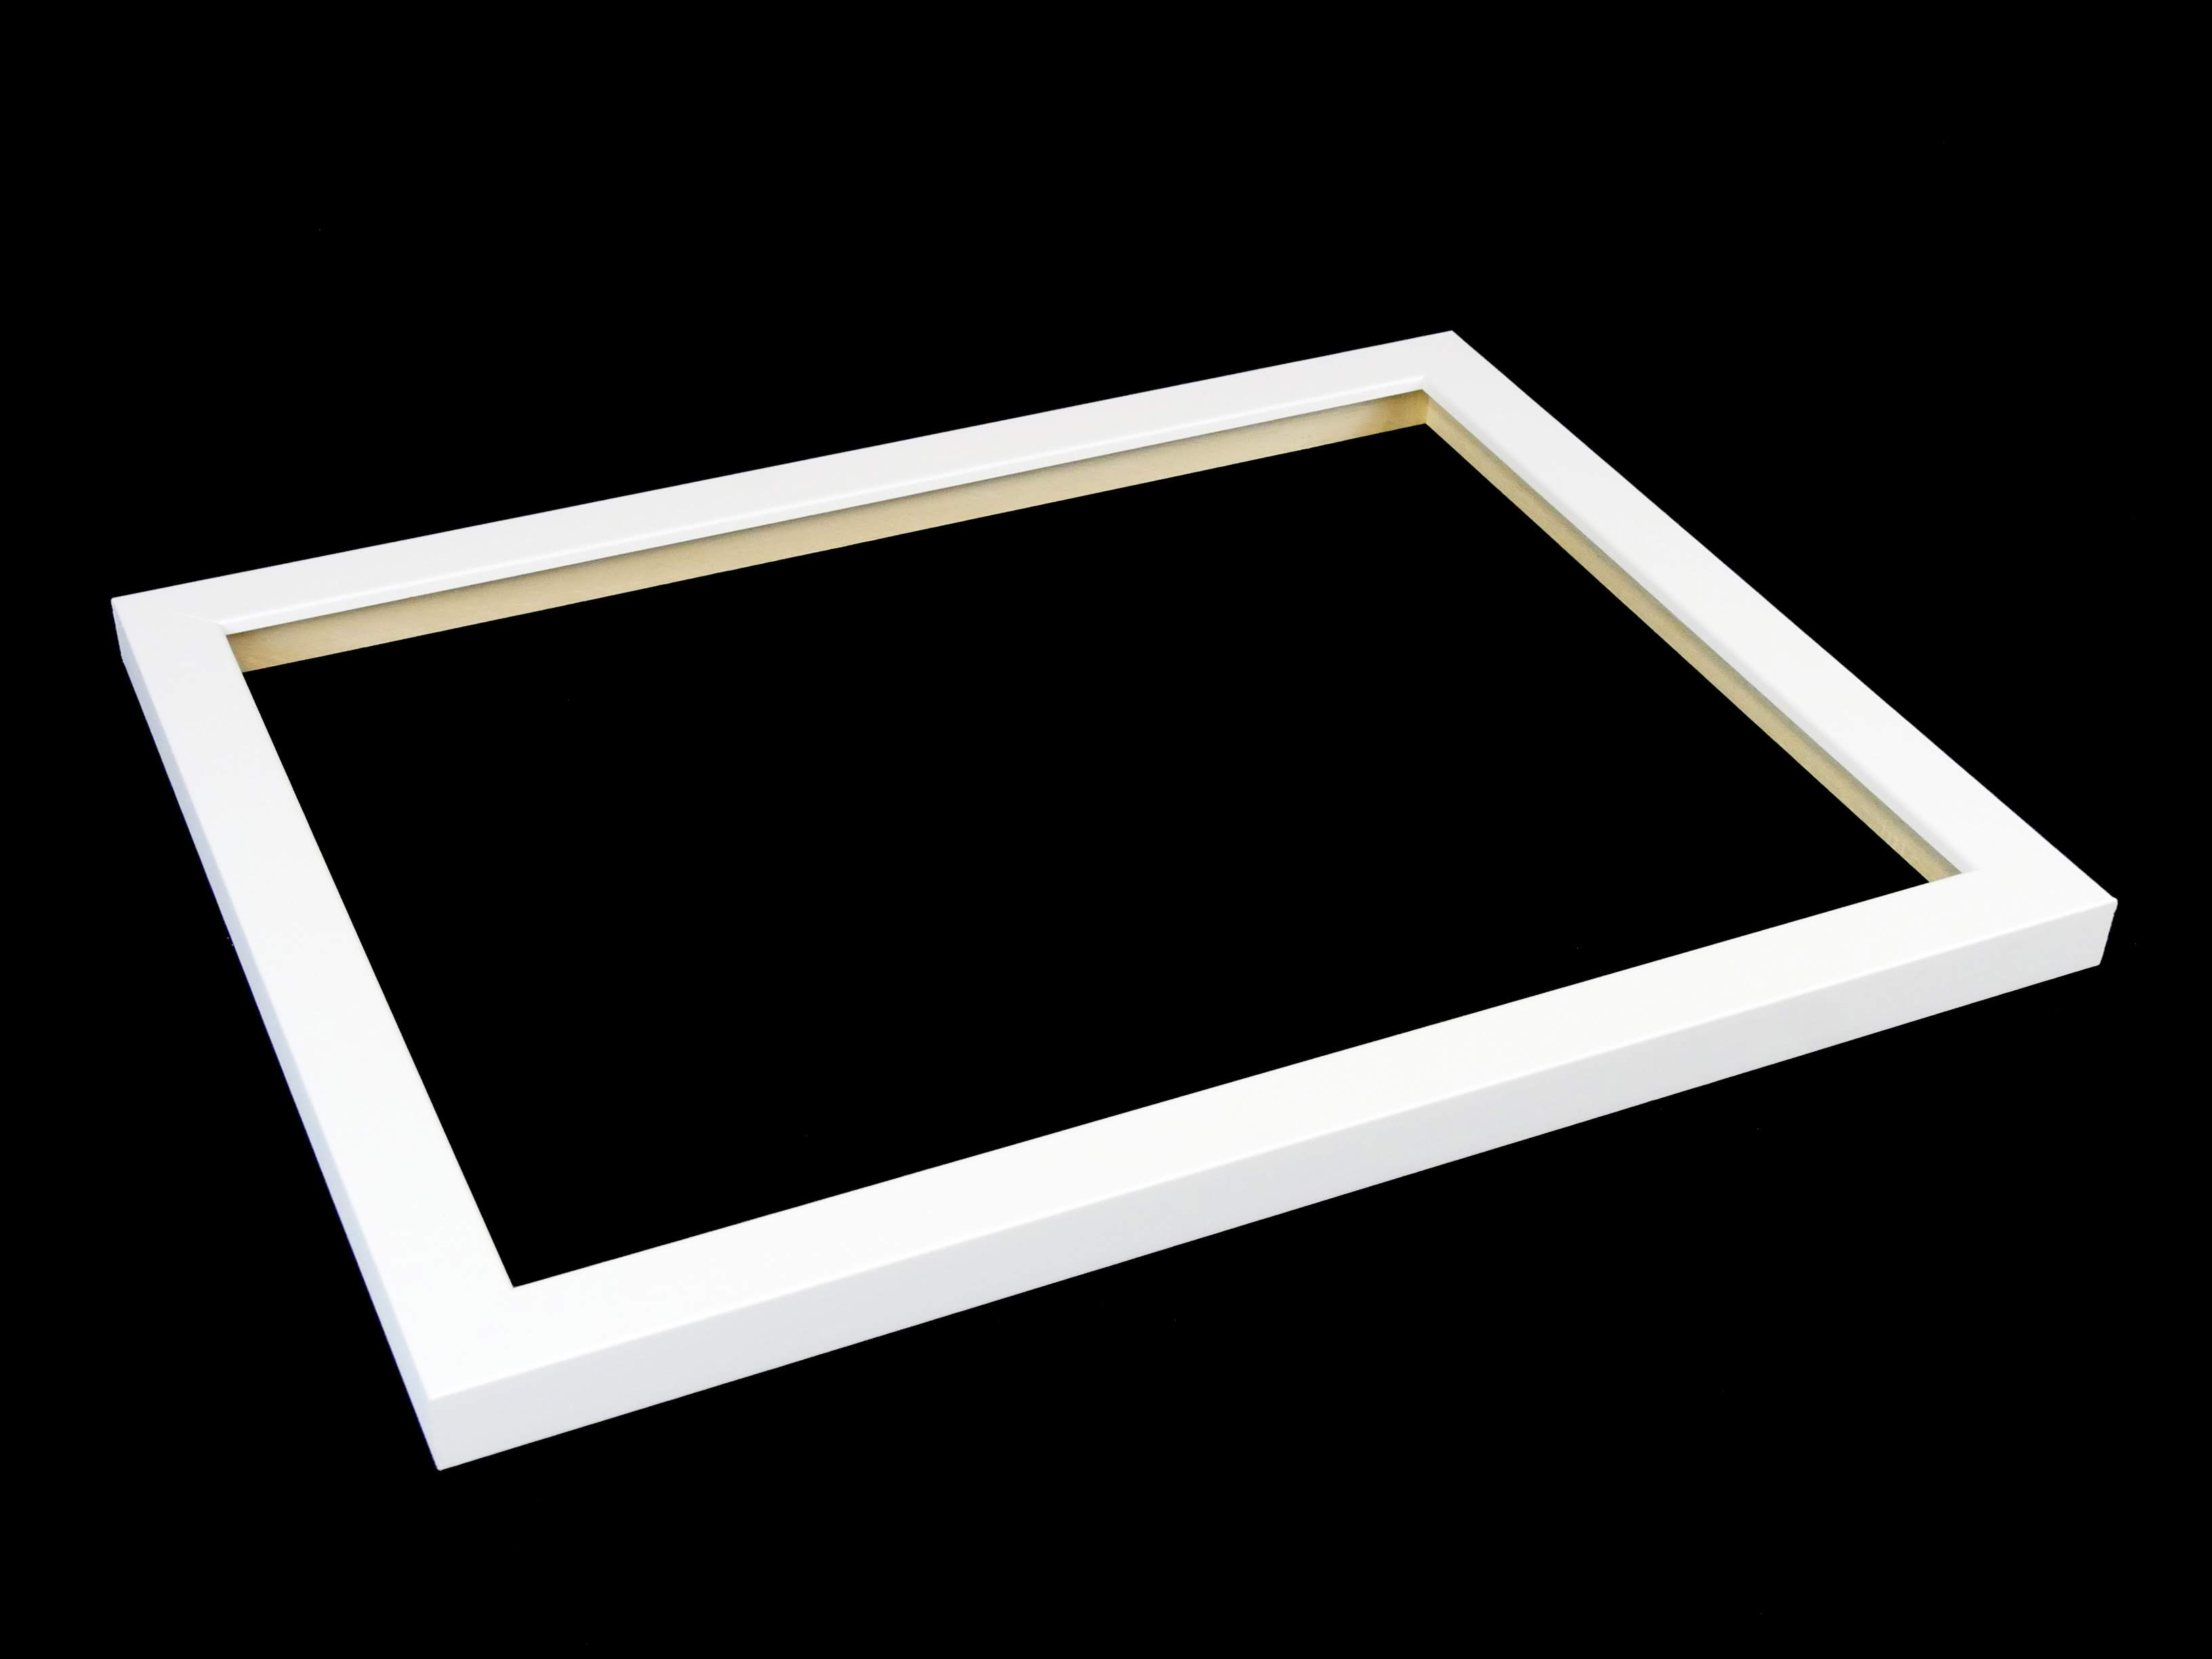 a primed and twice-sprayed white frame